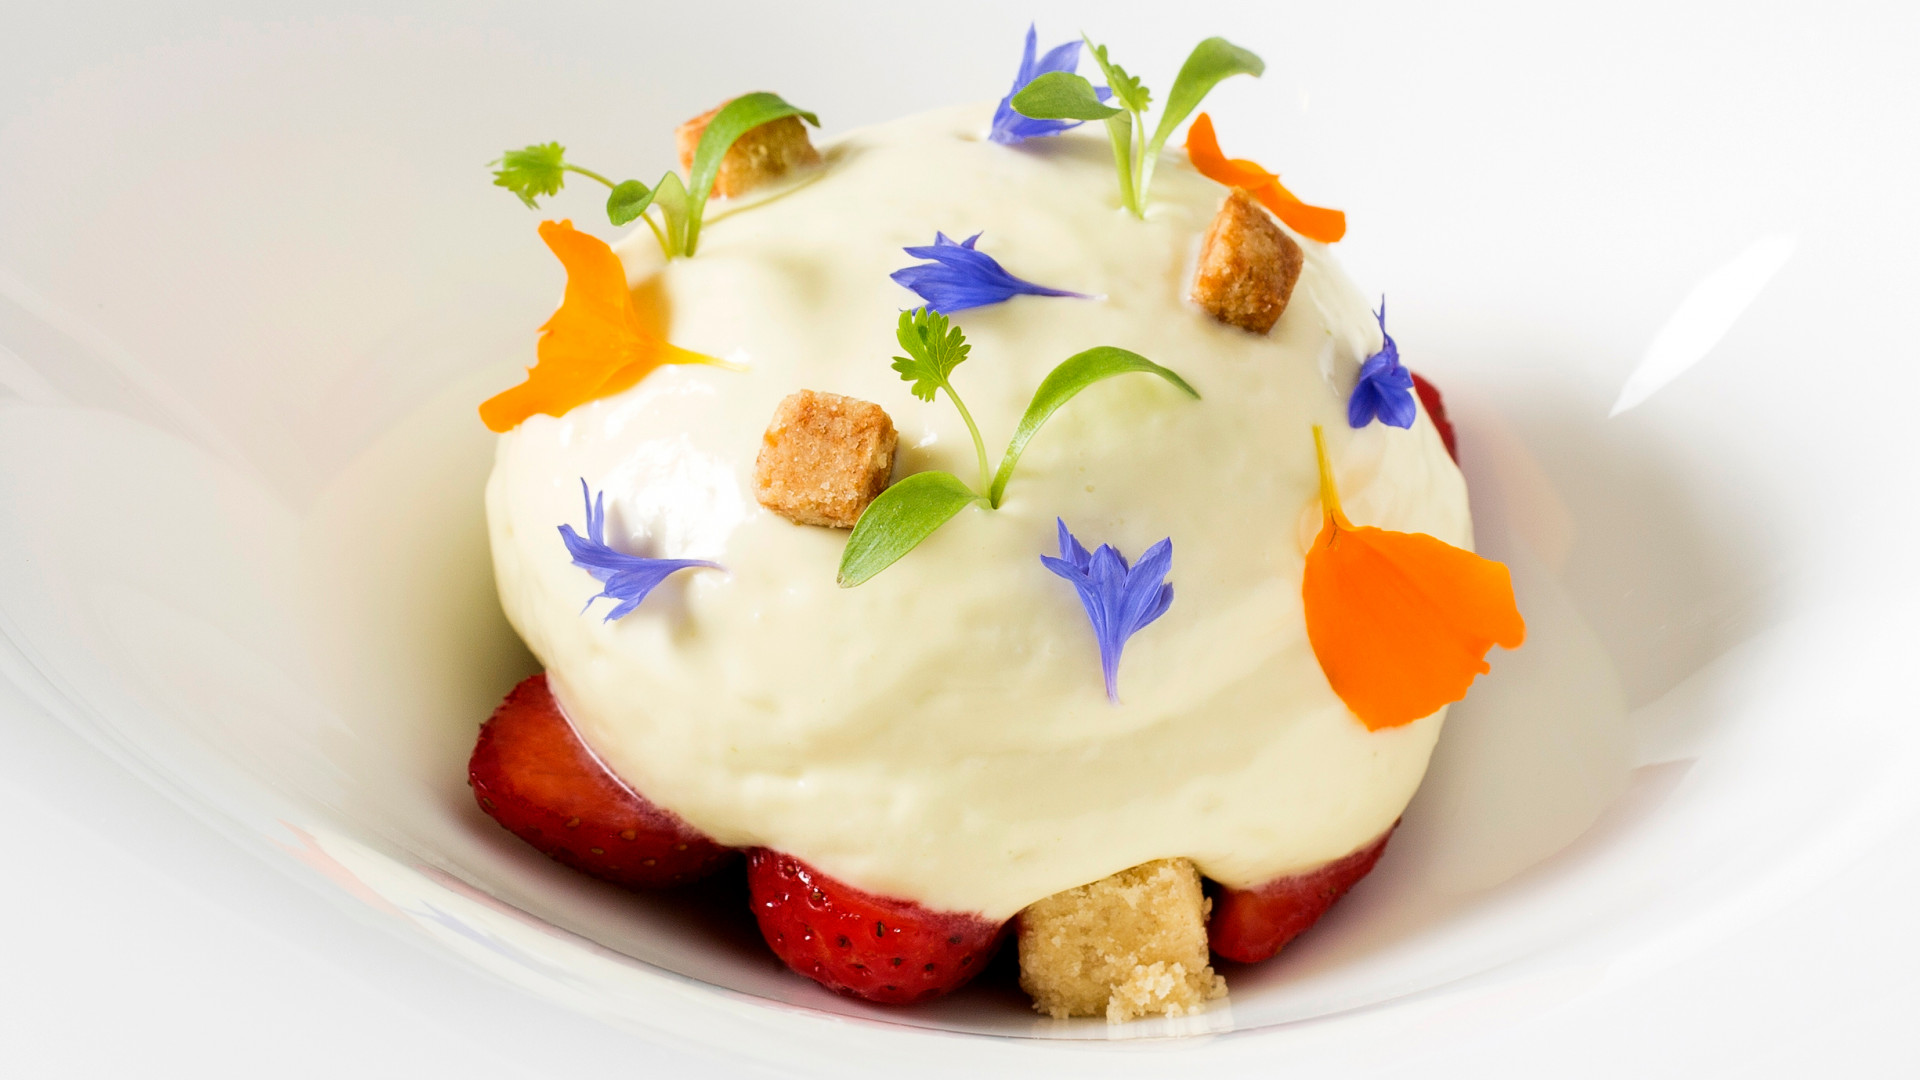 Strawberry gariguette, olive oil, basil